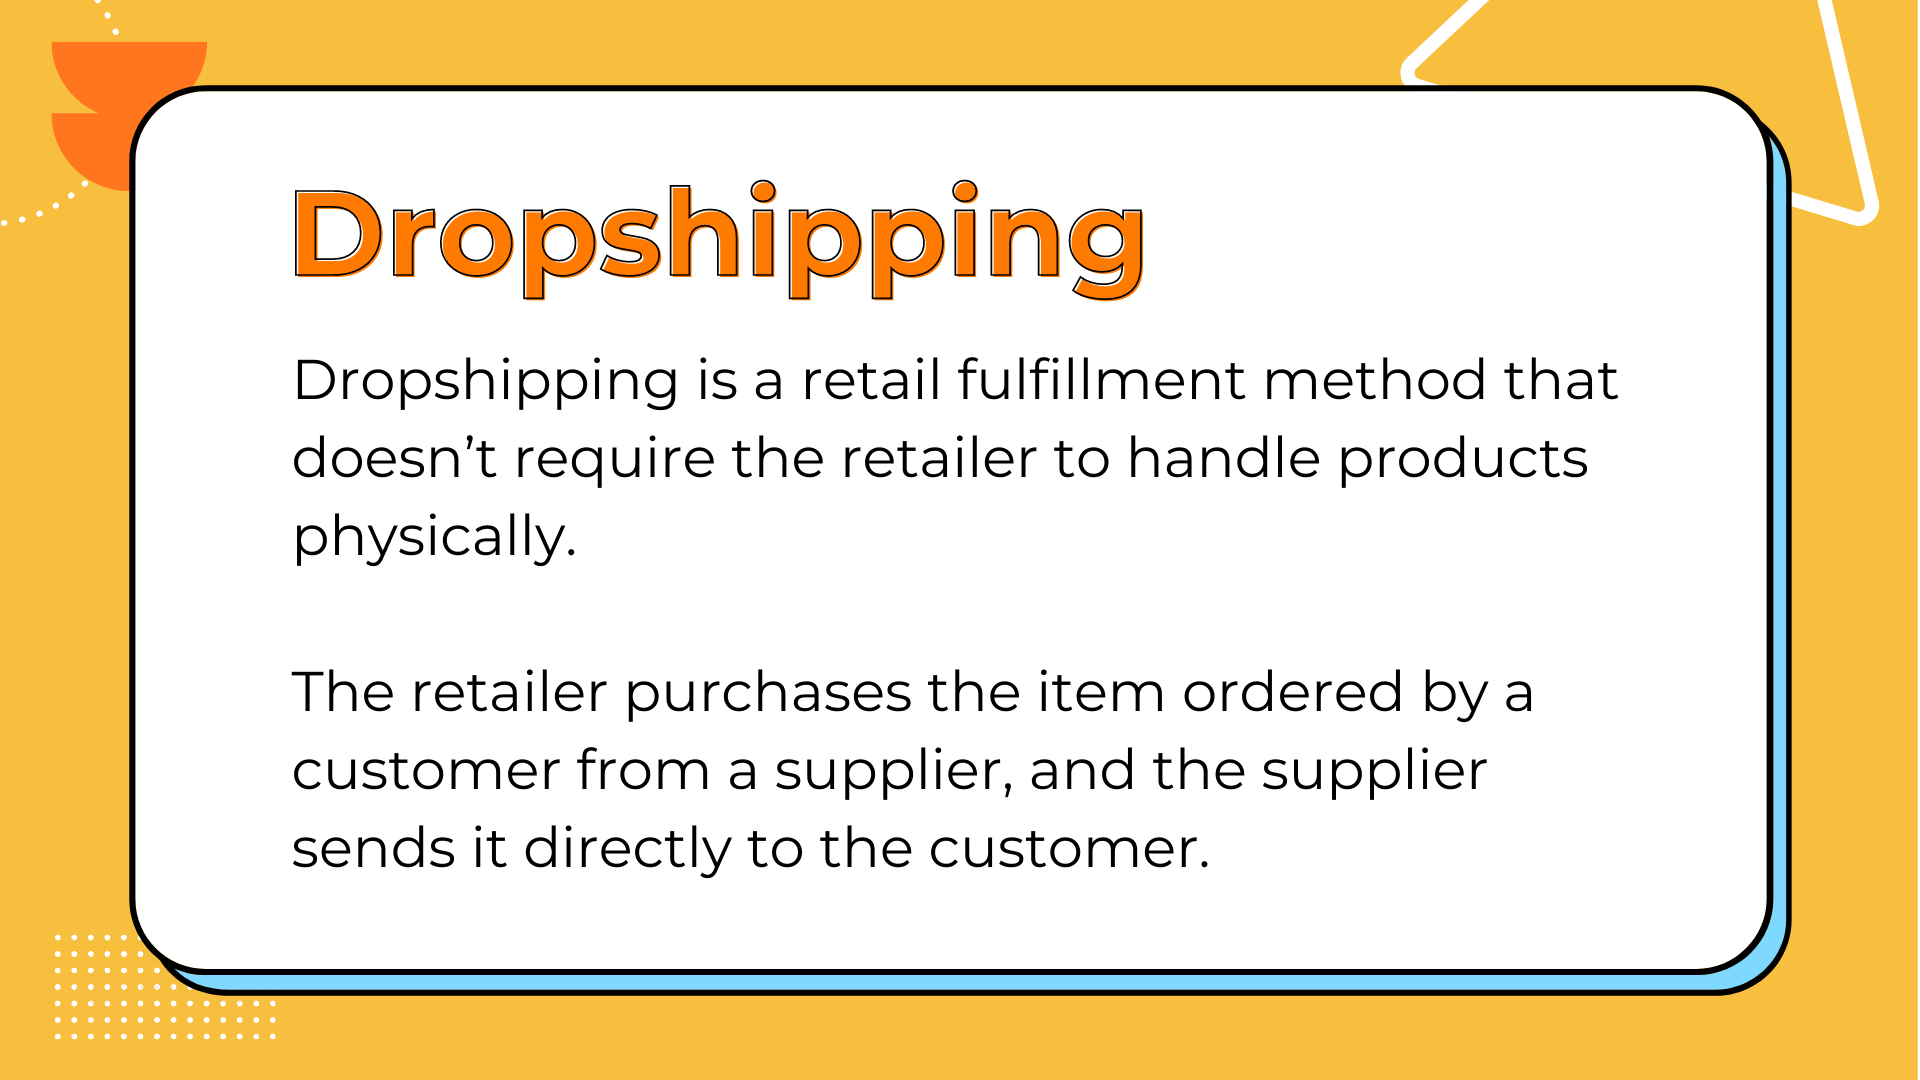 Dropshipping is a retail fulfillment method that doesn't require the retailer to handle products physically. The retailer purchases the item ordered by a customer from a supplier, and the supplier sends it directly to the customer.